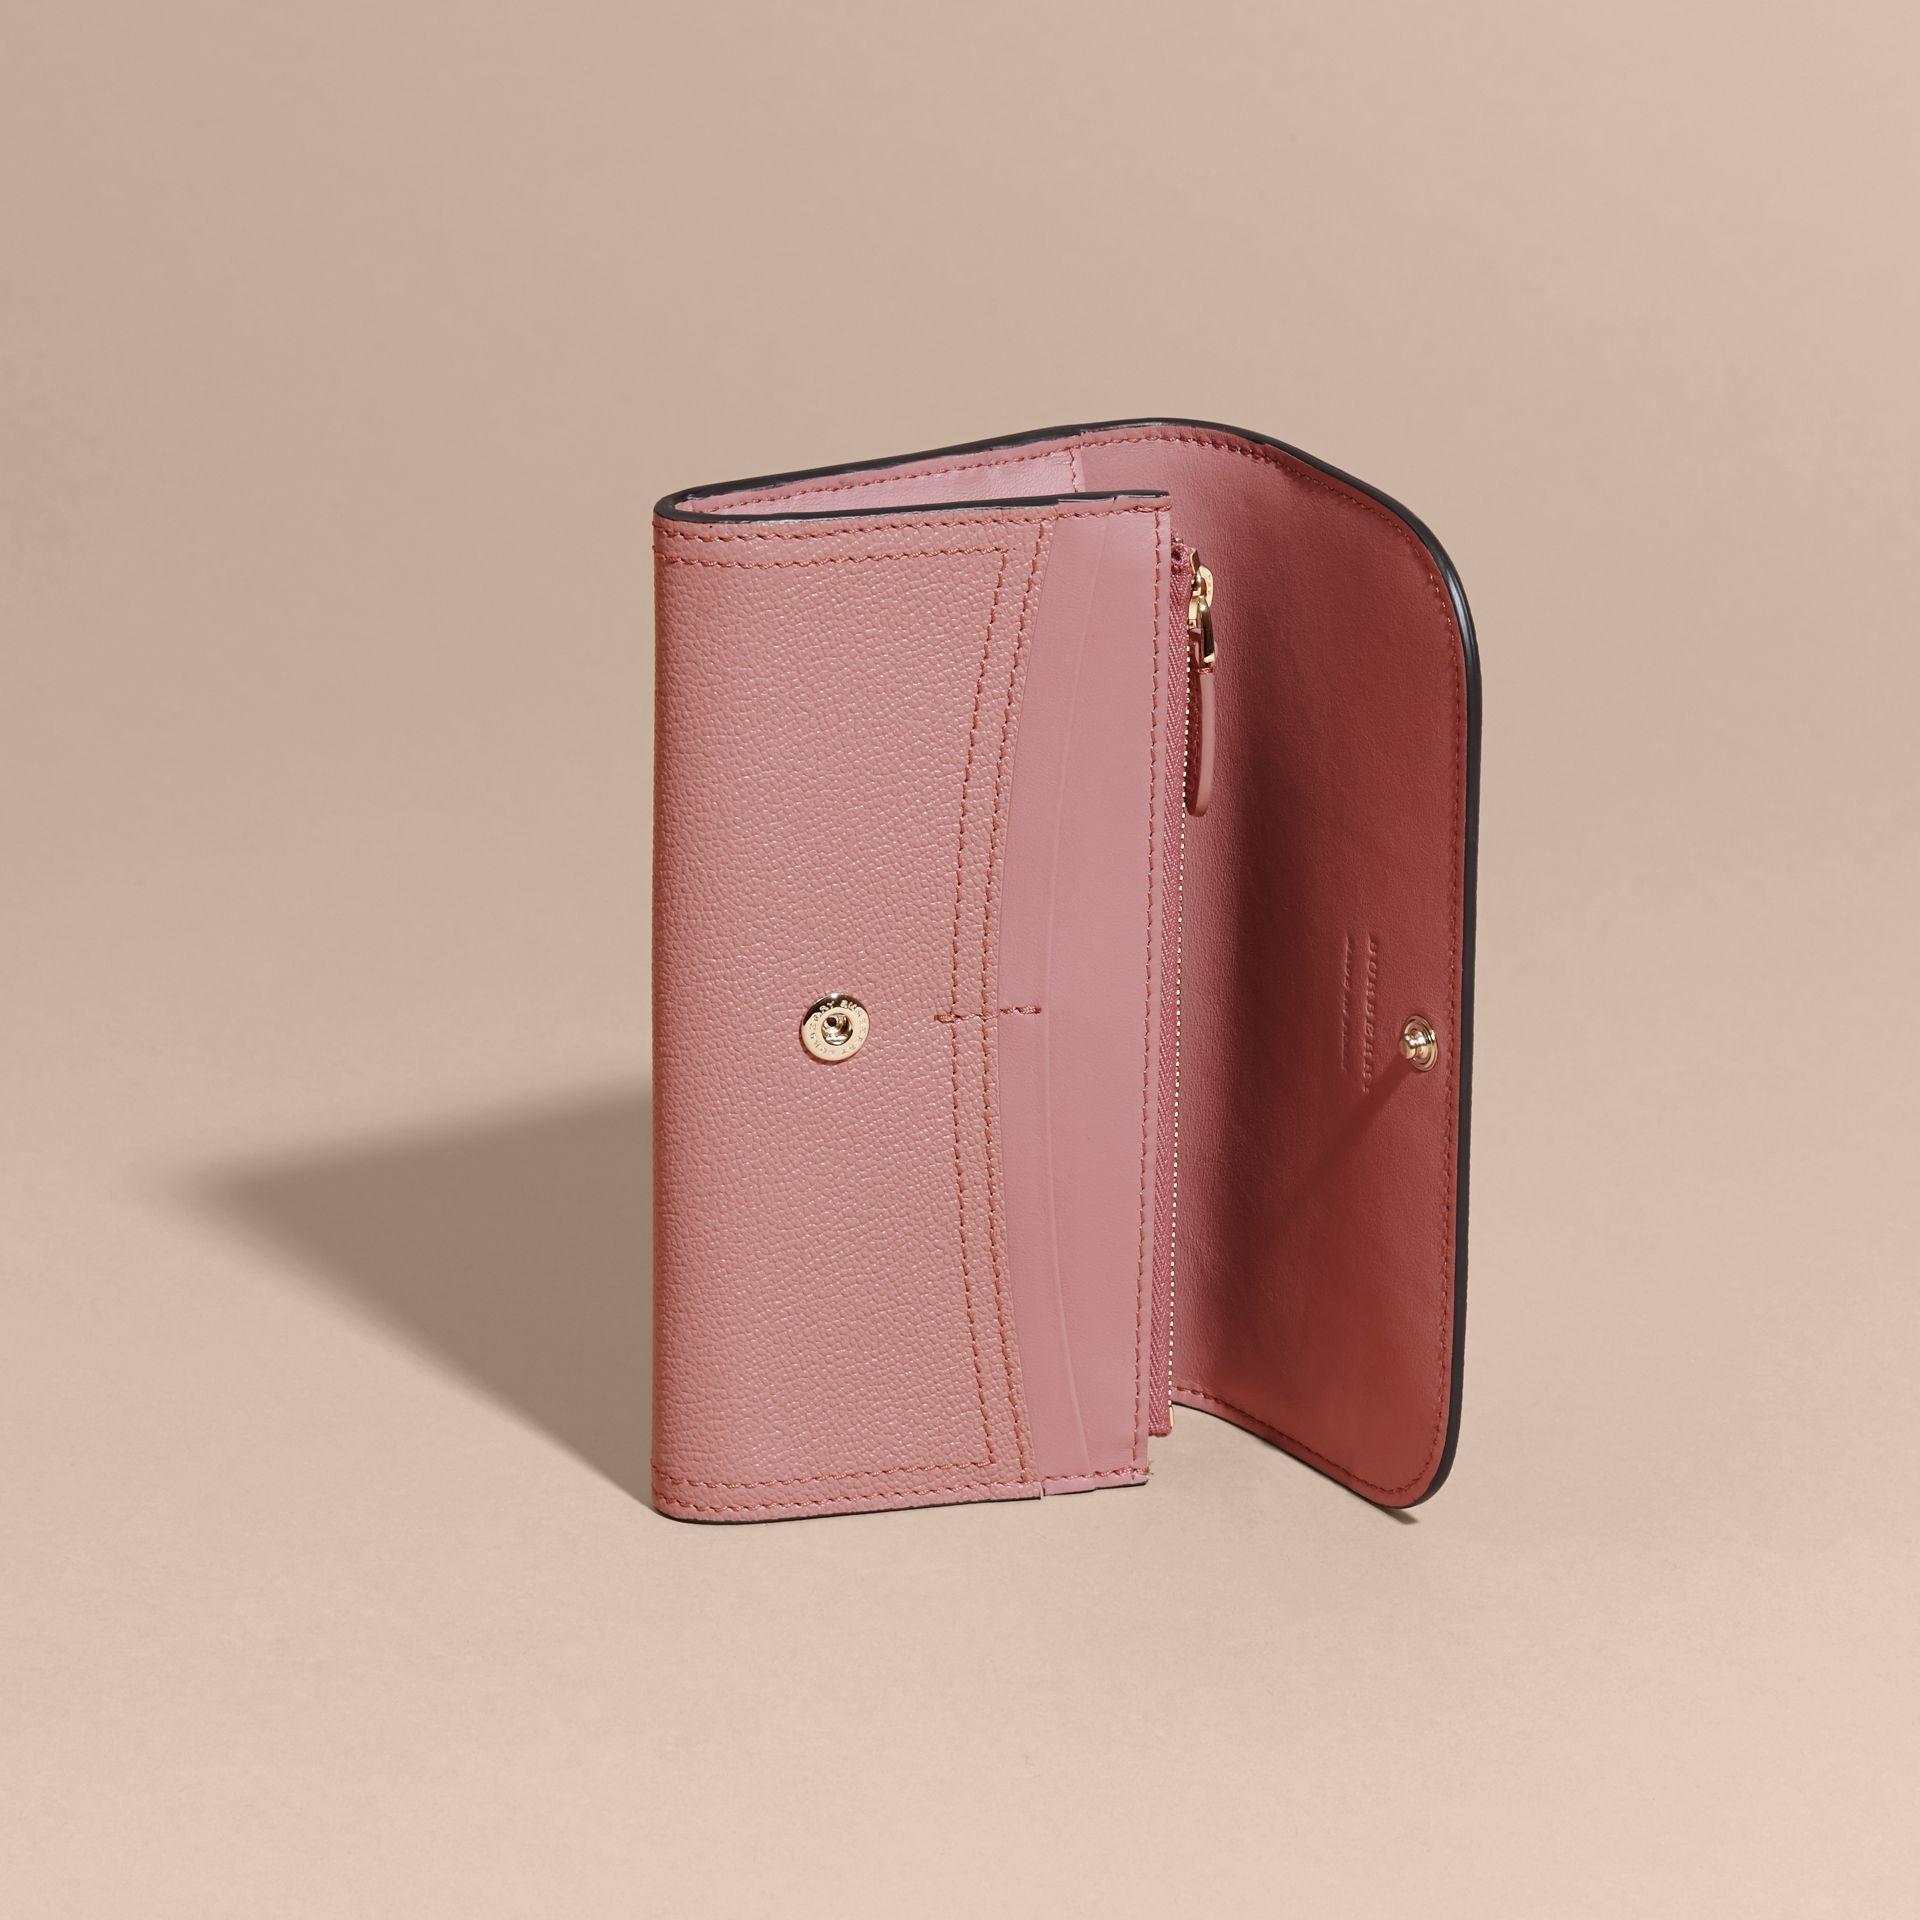 Grainy Leather Slim Continental Wallet in Dusty Pink - Women | Burberry Singapore - gallery image 6